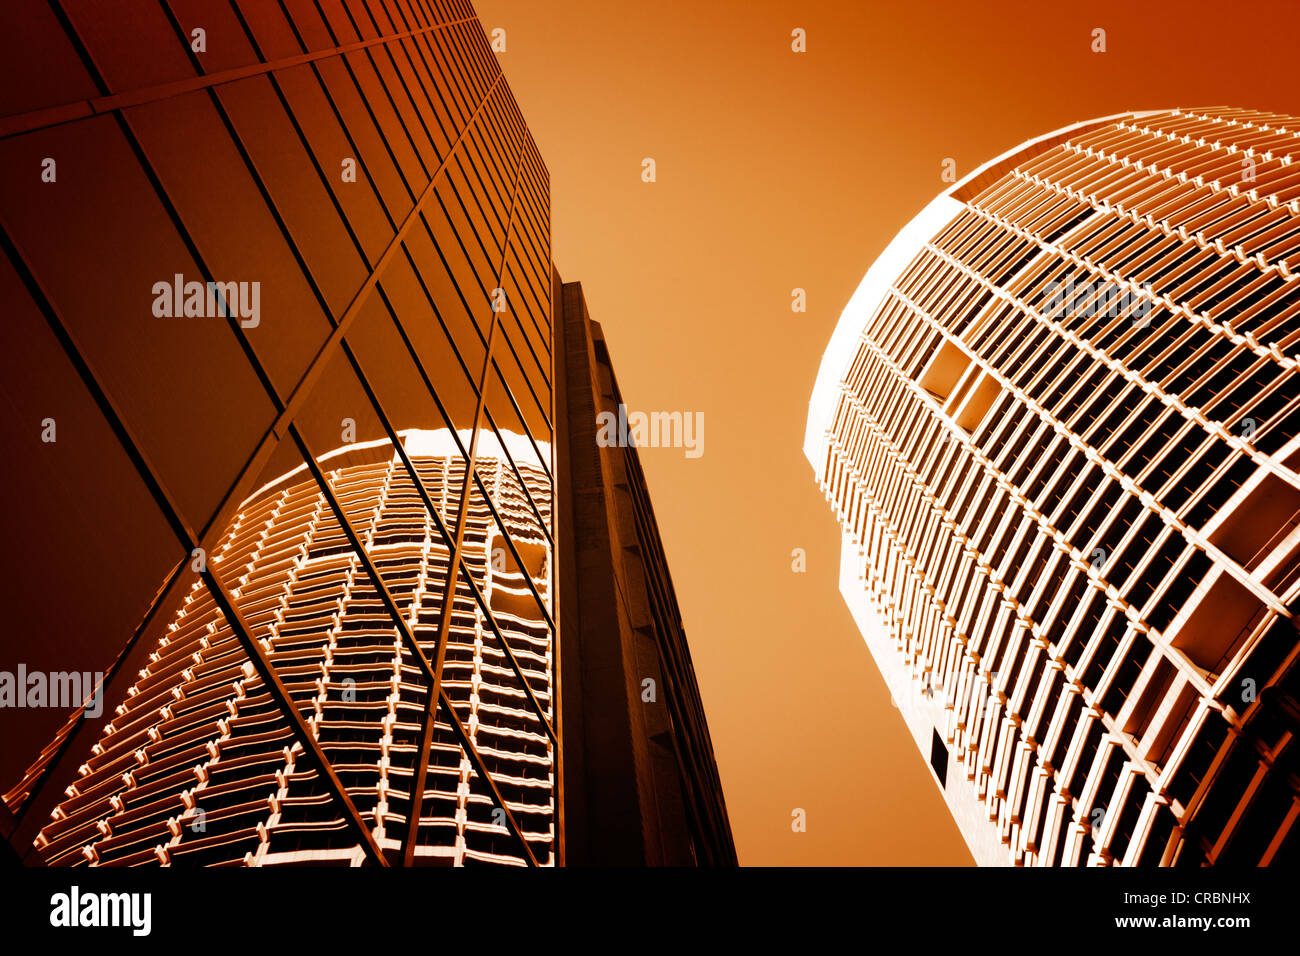 Tall buildings in Sydney's CBD sepia toned. - Stock Image